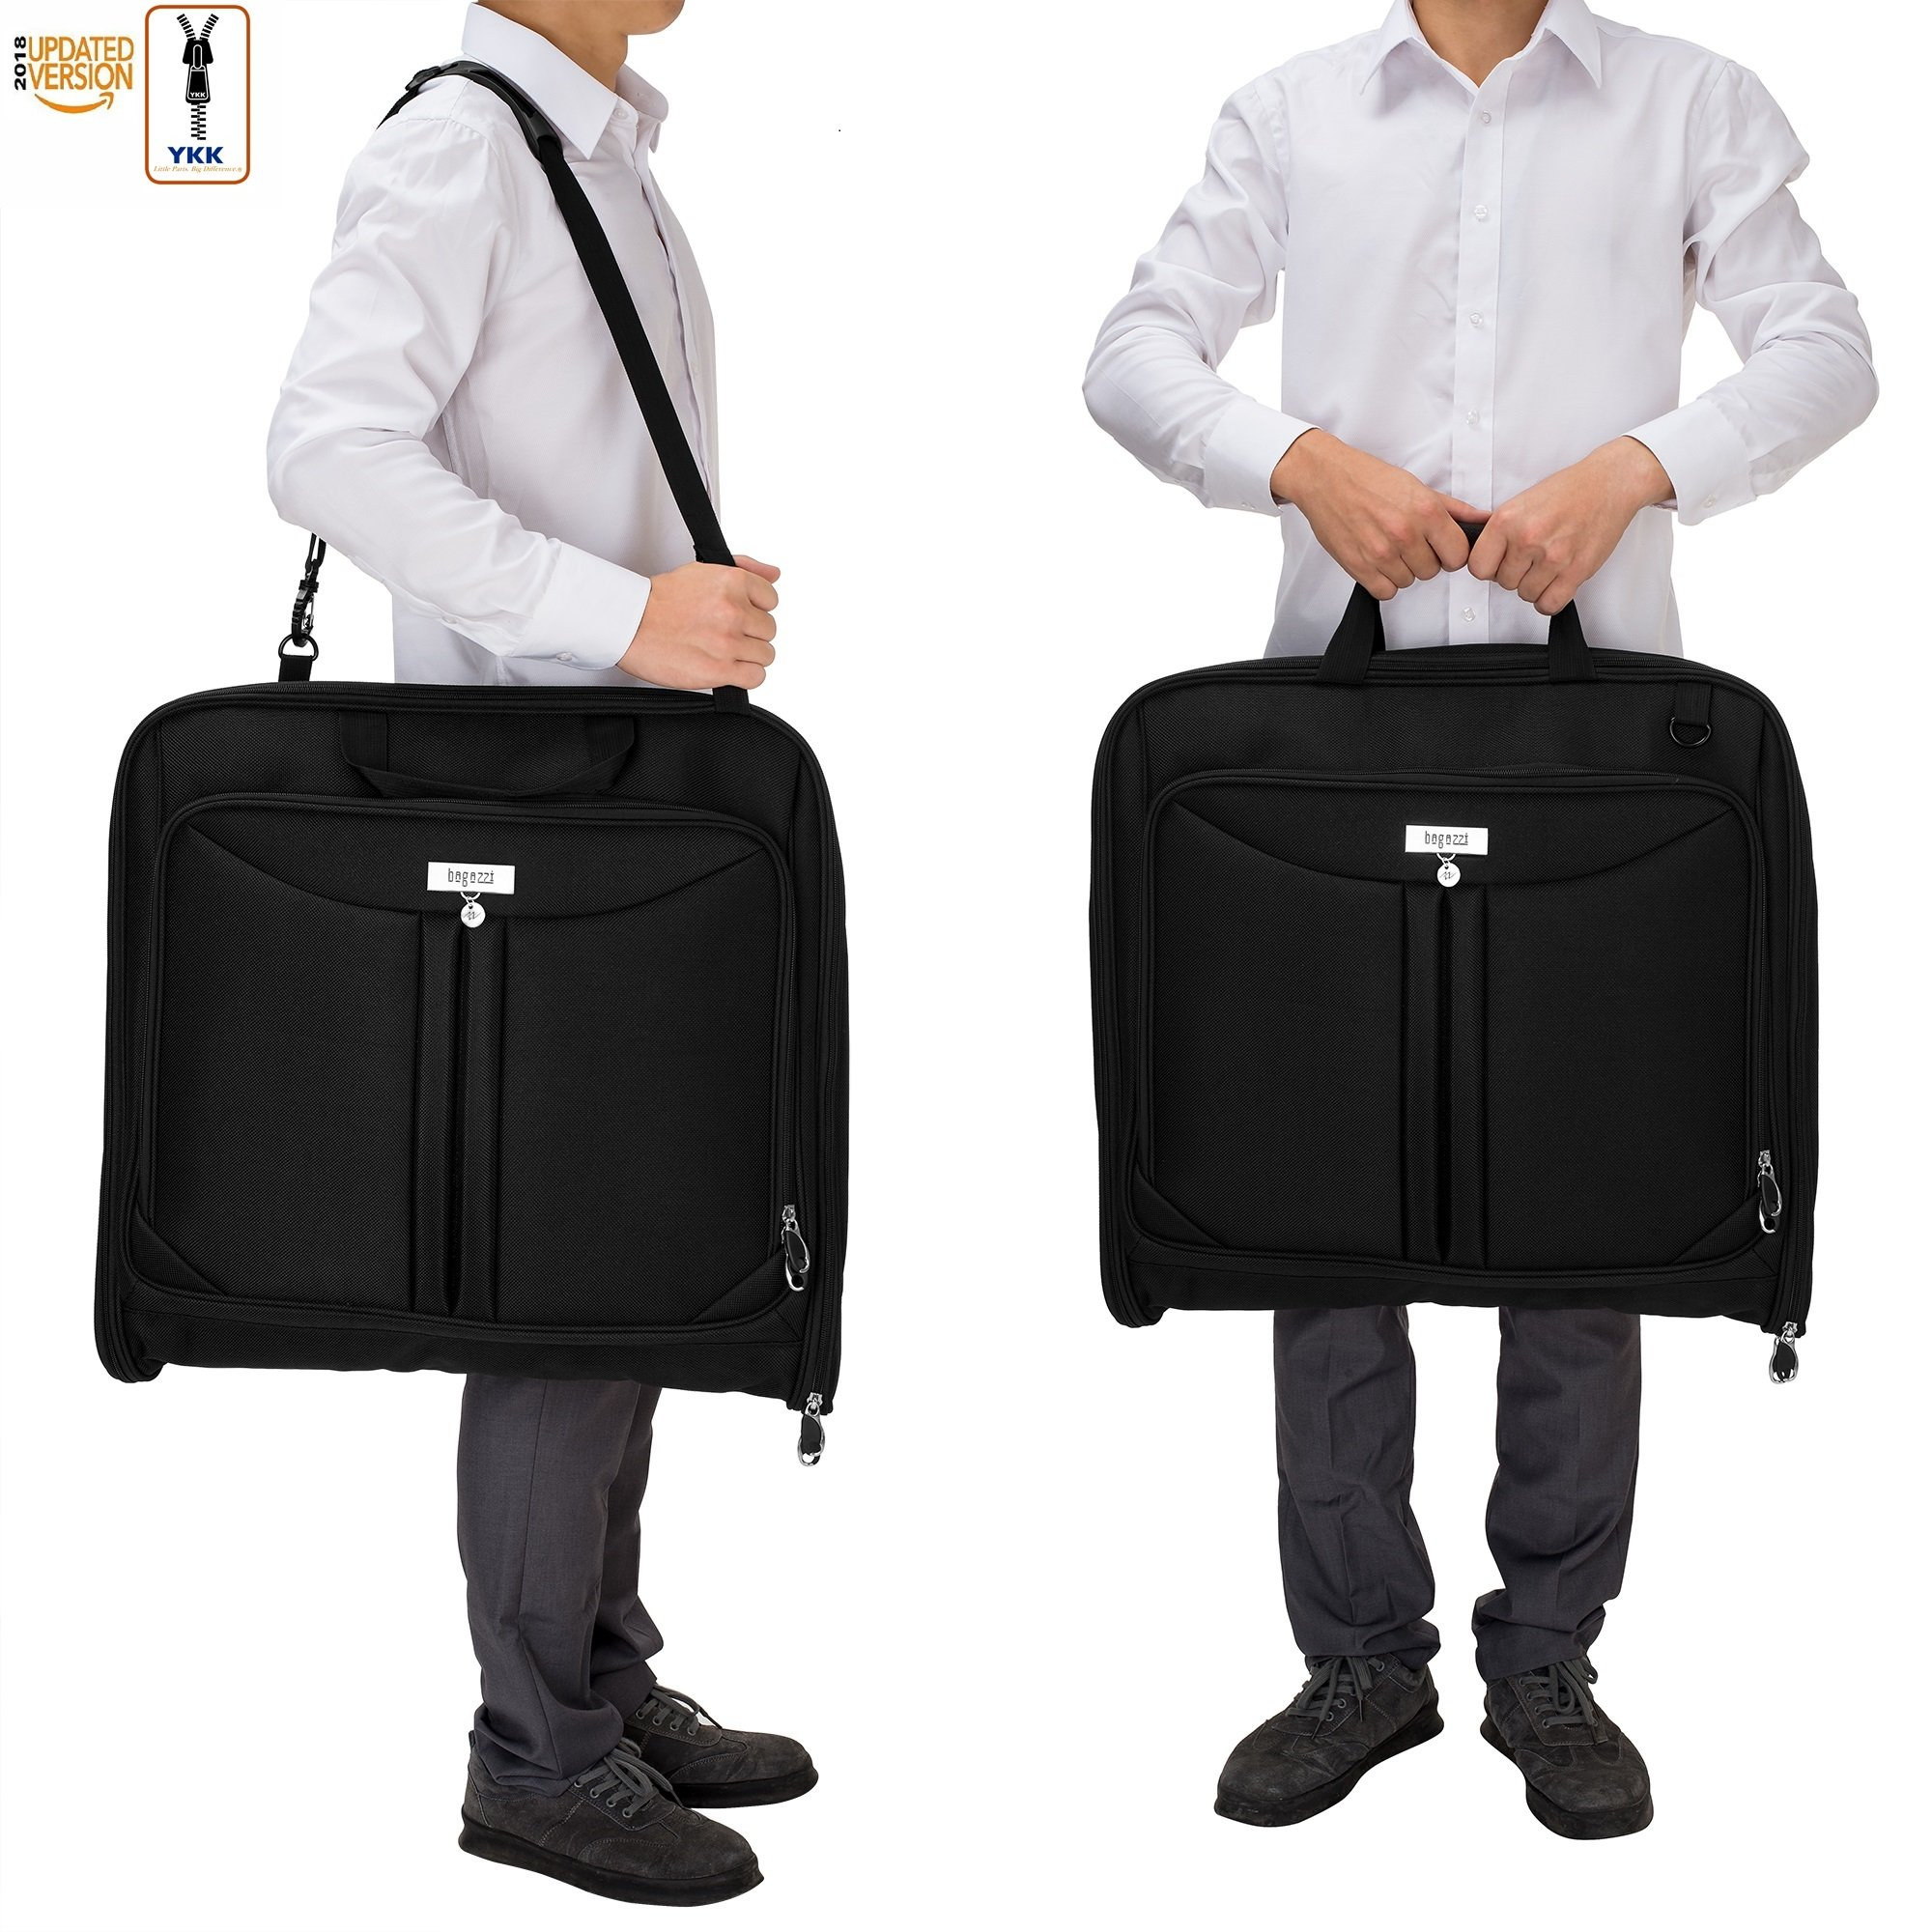 3 Suit Carry On Garment Bag for Travel & Business Trips With Shoulder Strap 40'' Bagazzi Brand by Bagazzi (Image #6)